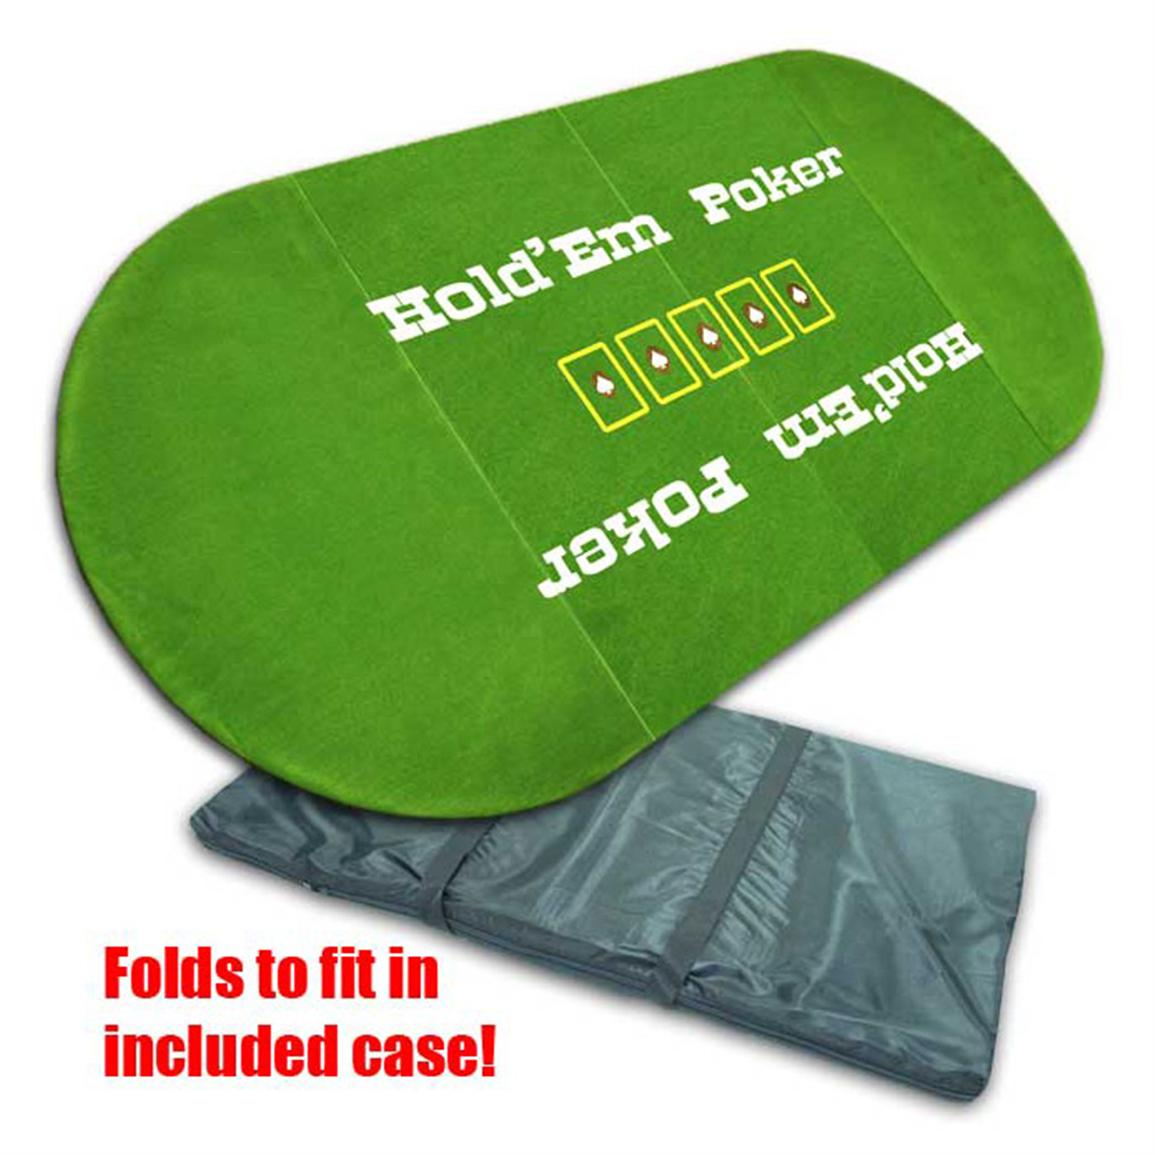 Trademark® Tri-fold Texas Hold 'em Poker Table Top